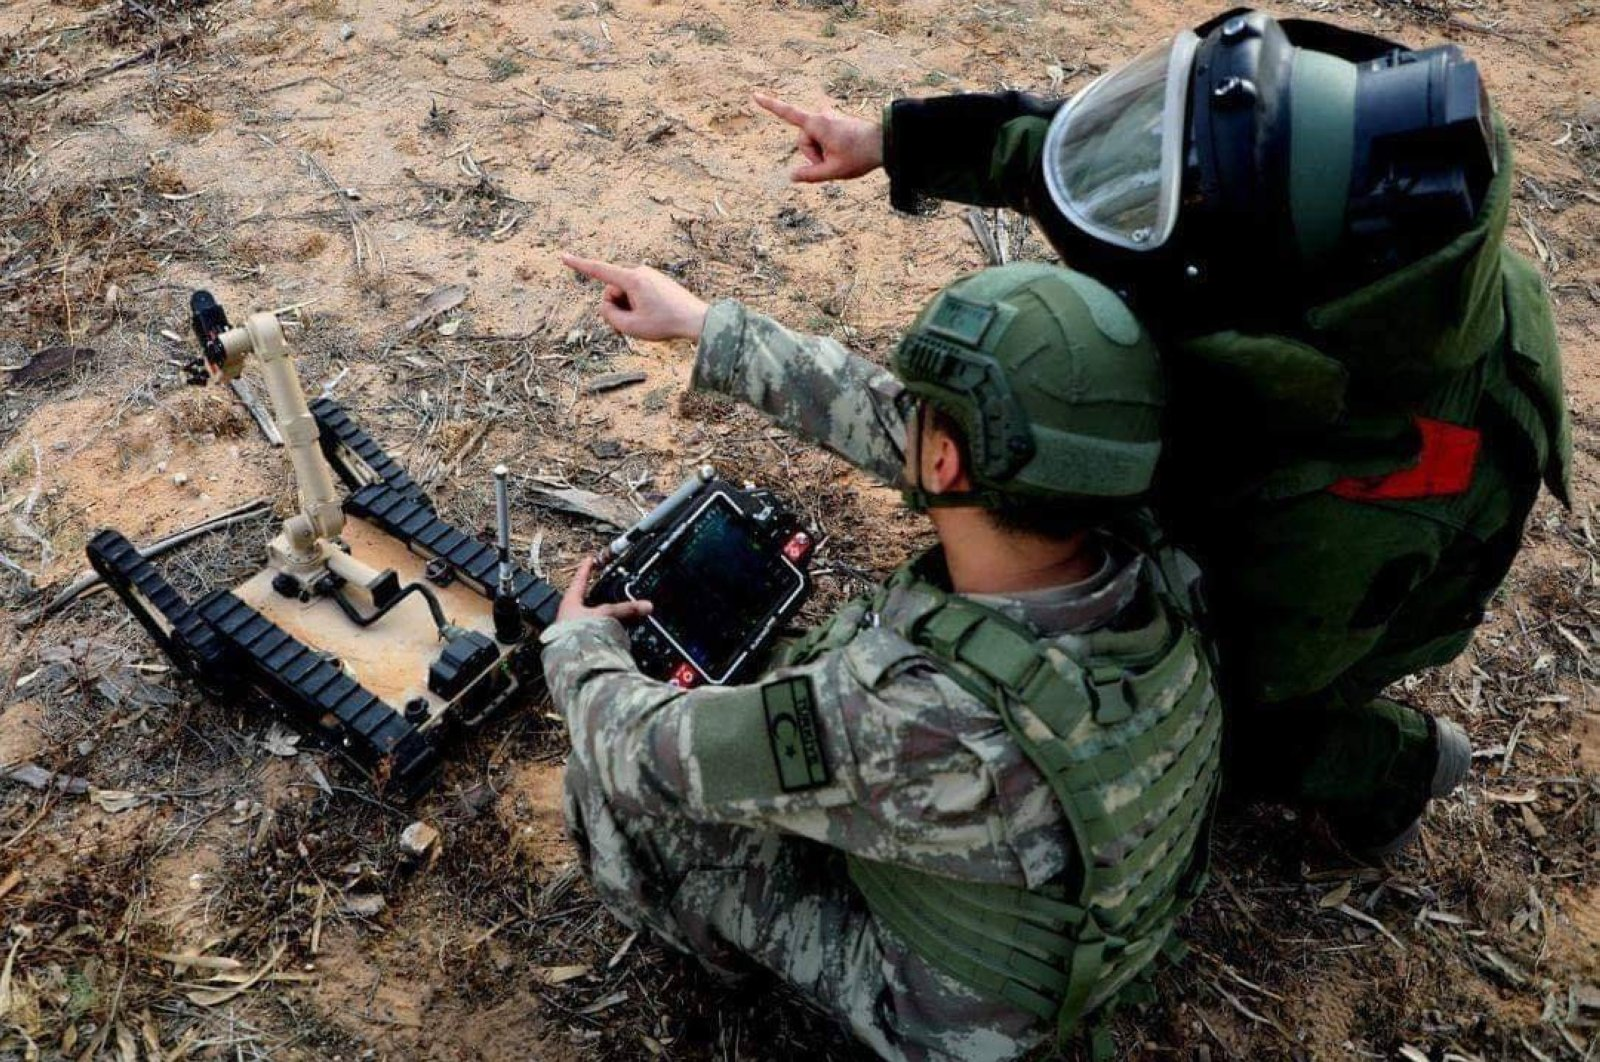 Turkish Military's demining experts started clearing civilian areas in Libya to prevent accidental explosions, June 11, 2020. (IHA)